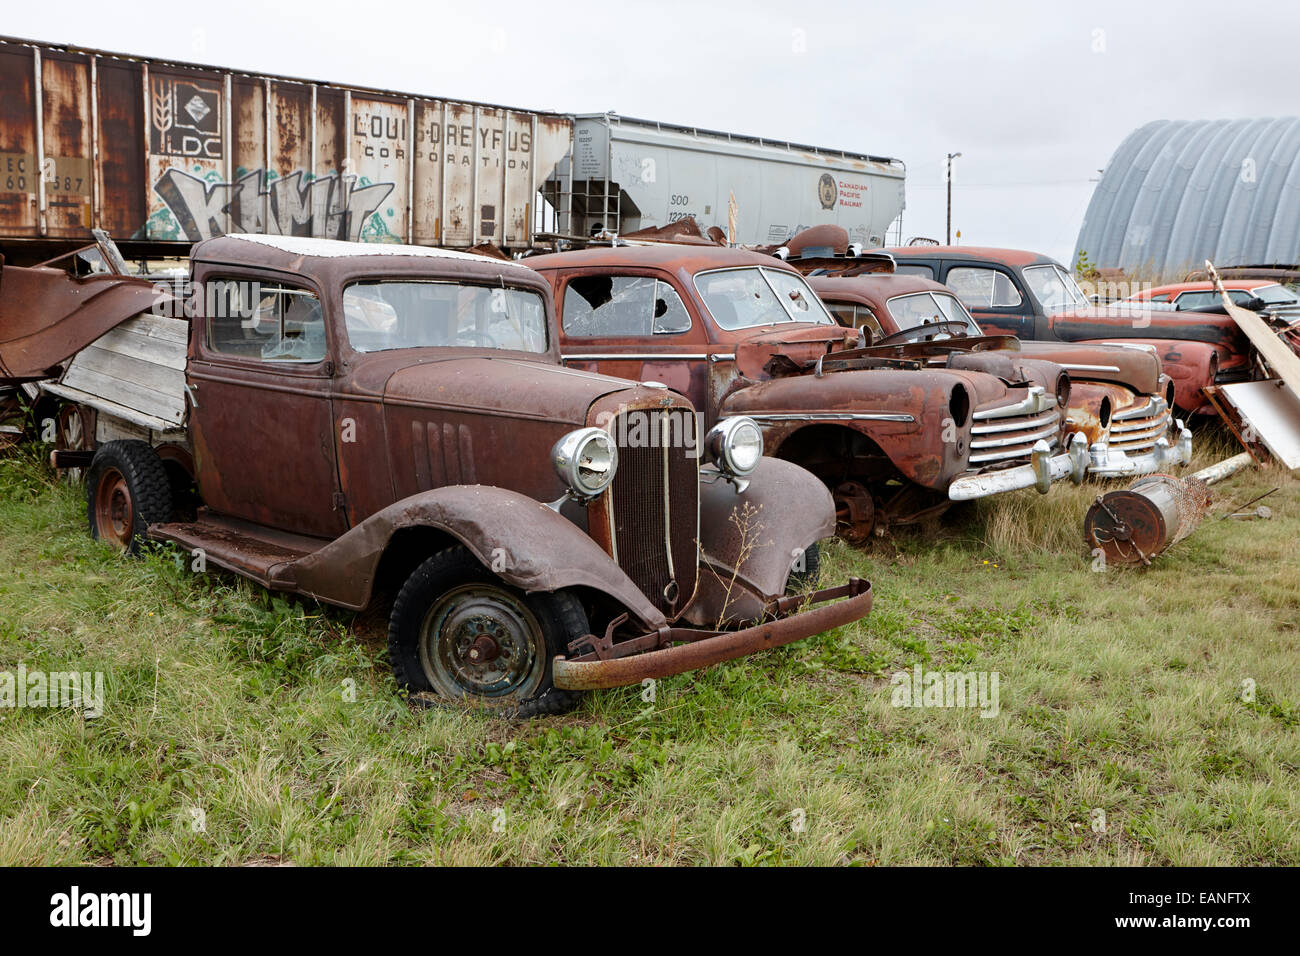 vintage historic chevrolet and ford vehicles in junkyard Saskatchewan Canada - Stock Image